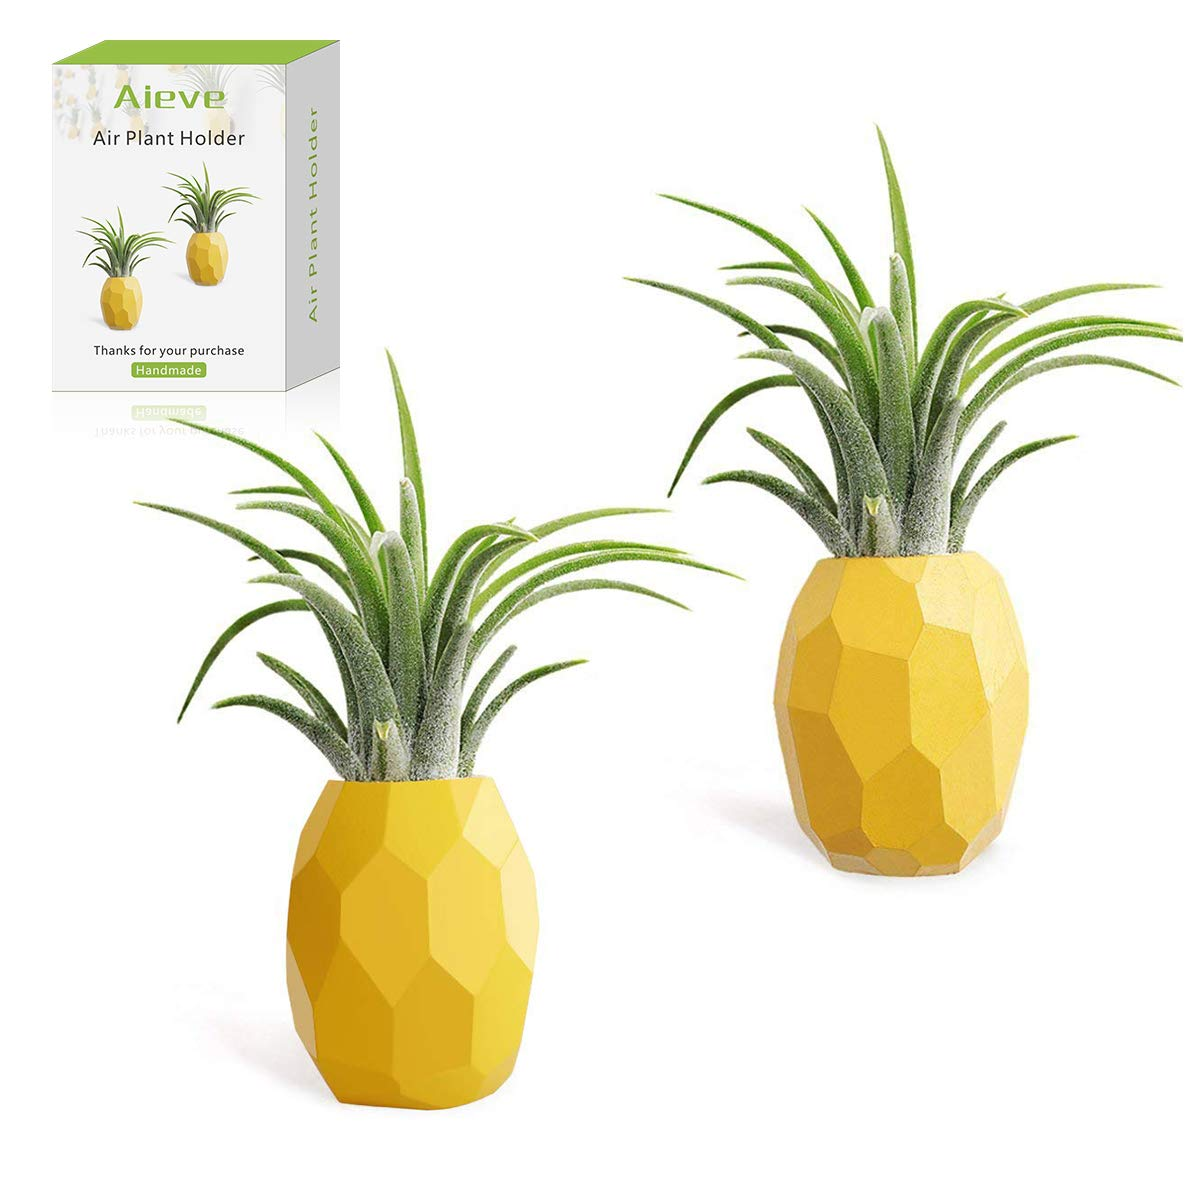 AIEVE Air Plant Holder,2 Pack Air Plant Pineapple Planter Tillandsia Holder Hanger Geometric Air Plant Holder Container Pot Display with Magnet for Hanging Air Plants Indoor Wall Home Decor